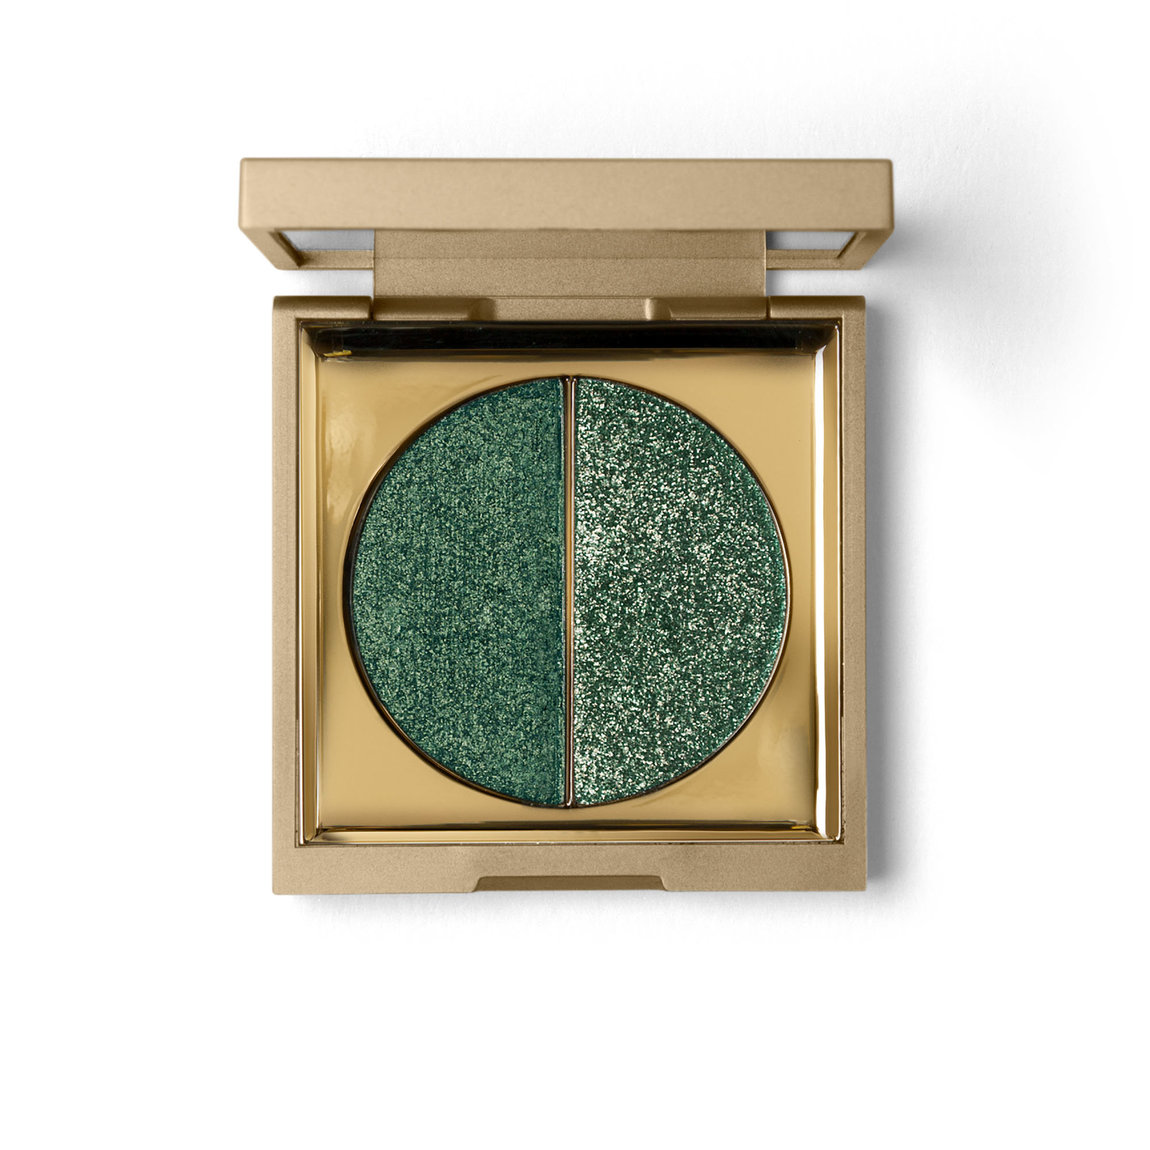 Stila Vivid & Vibrant Eye Shadow Duo Jade product smear.